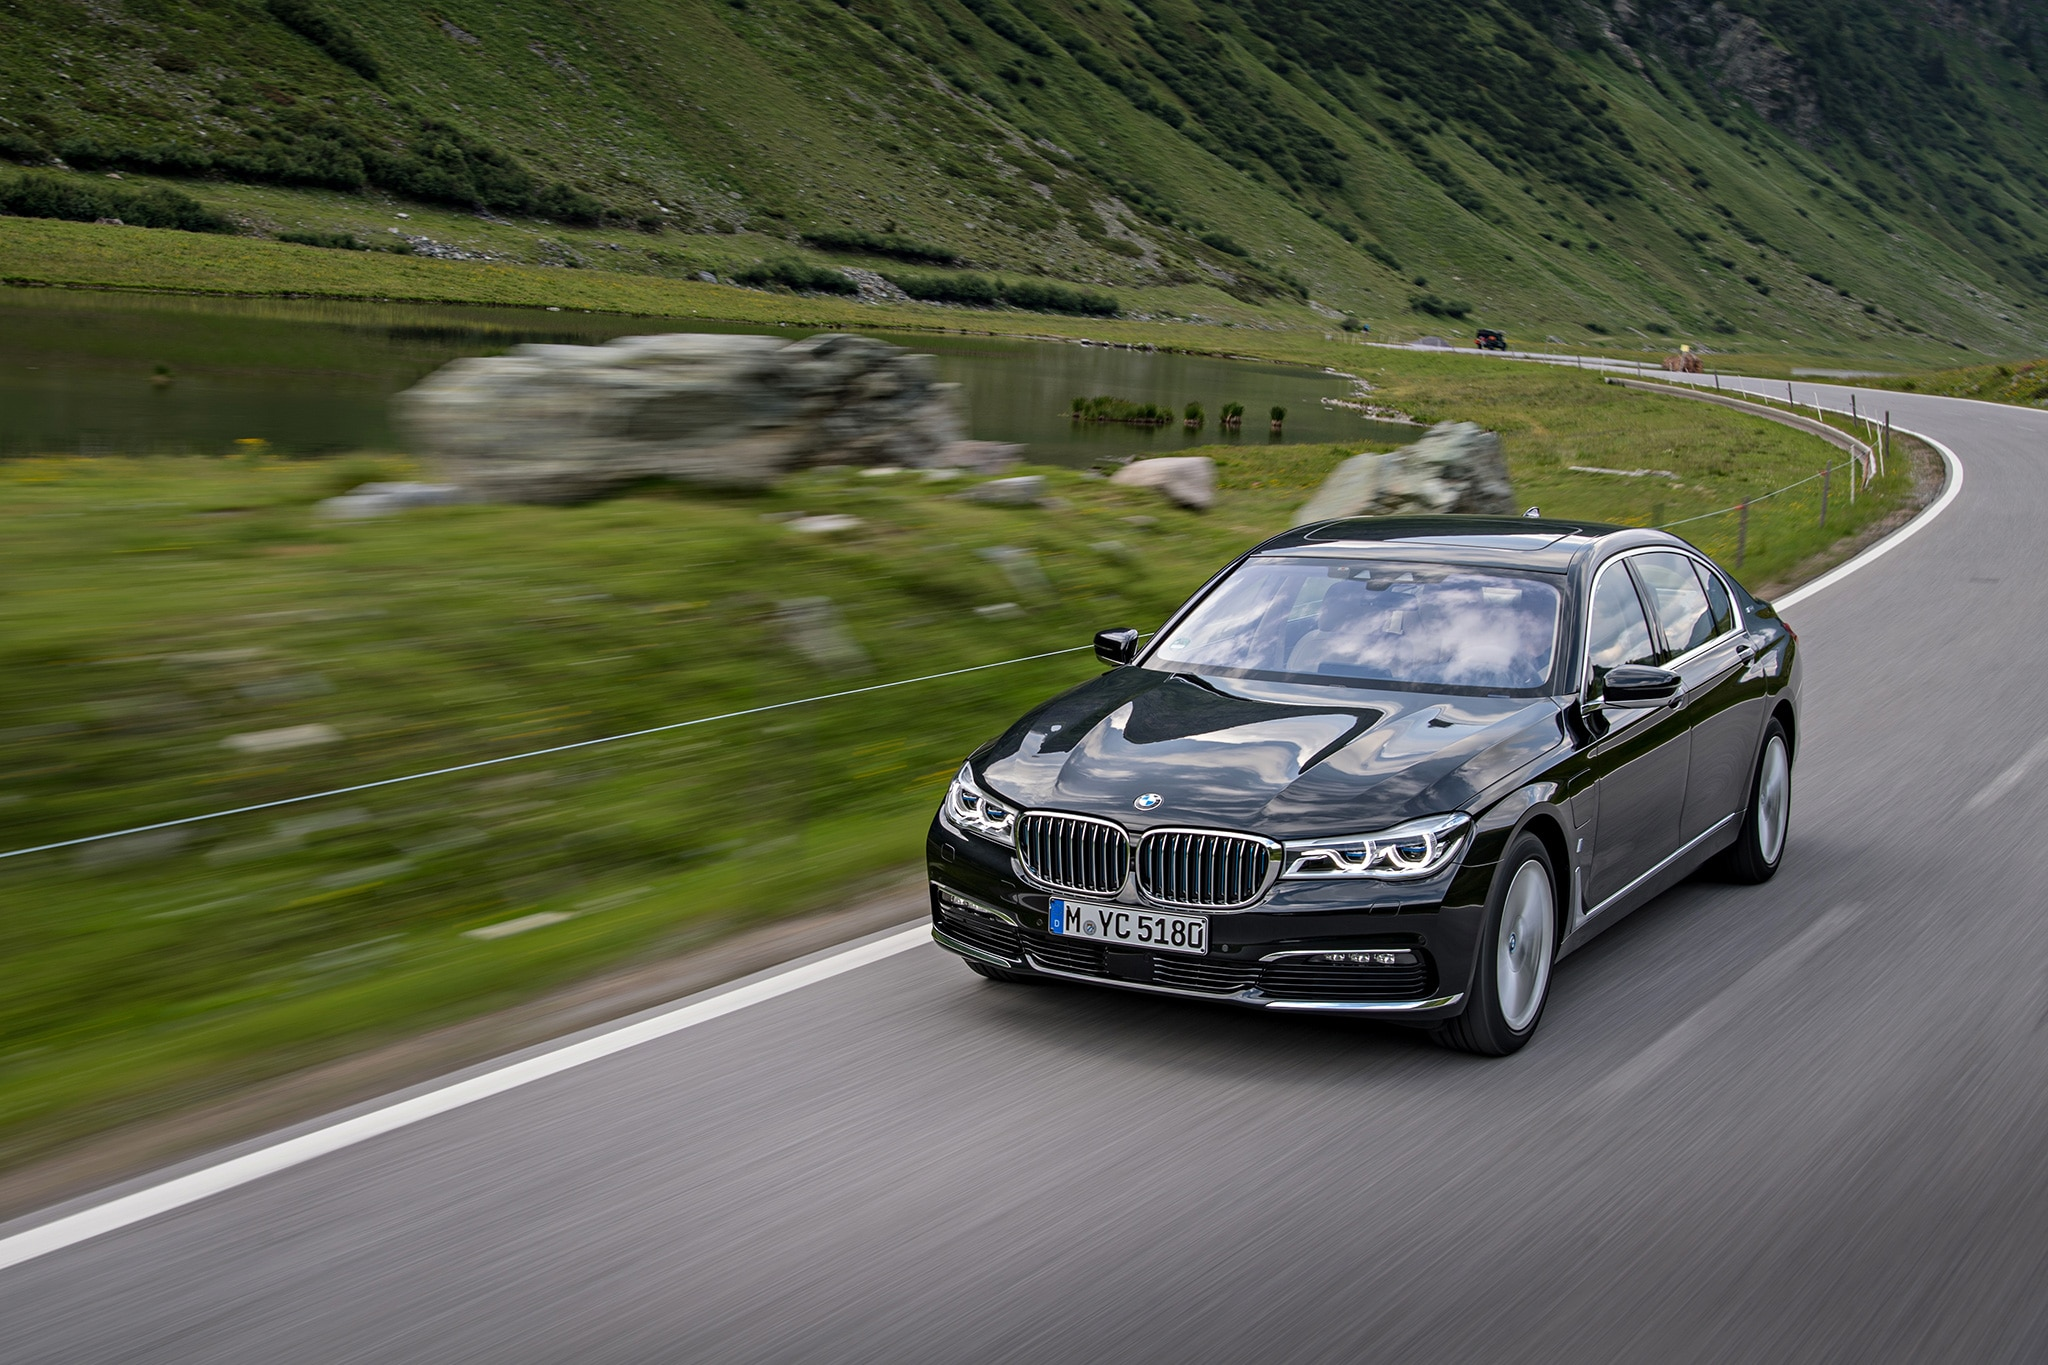 2017 BMW 740e XDrive IPerformance Heads To Dealerships 20 Advertisement Skip 1